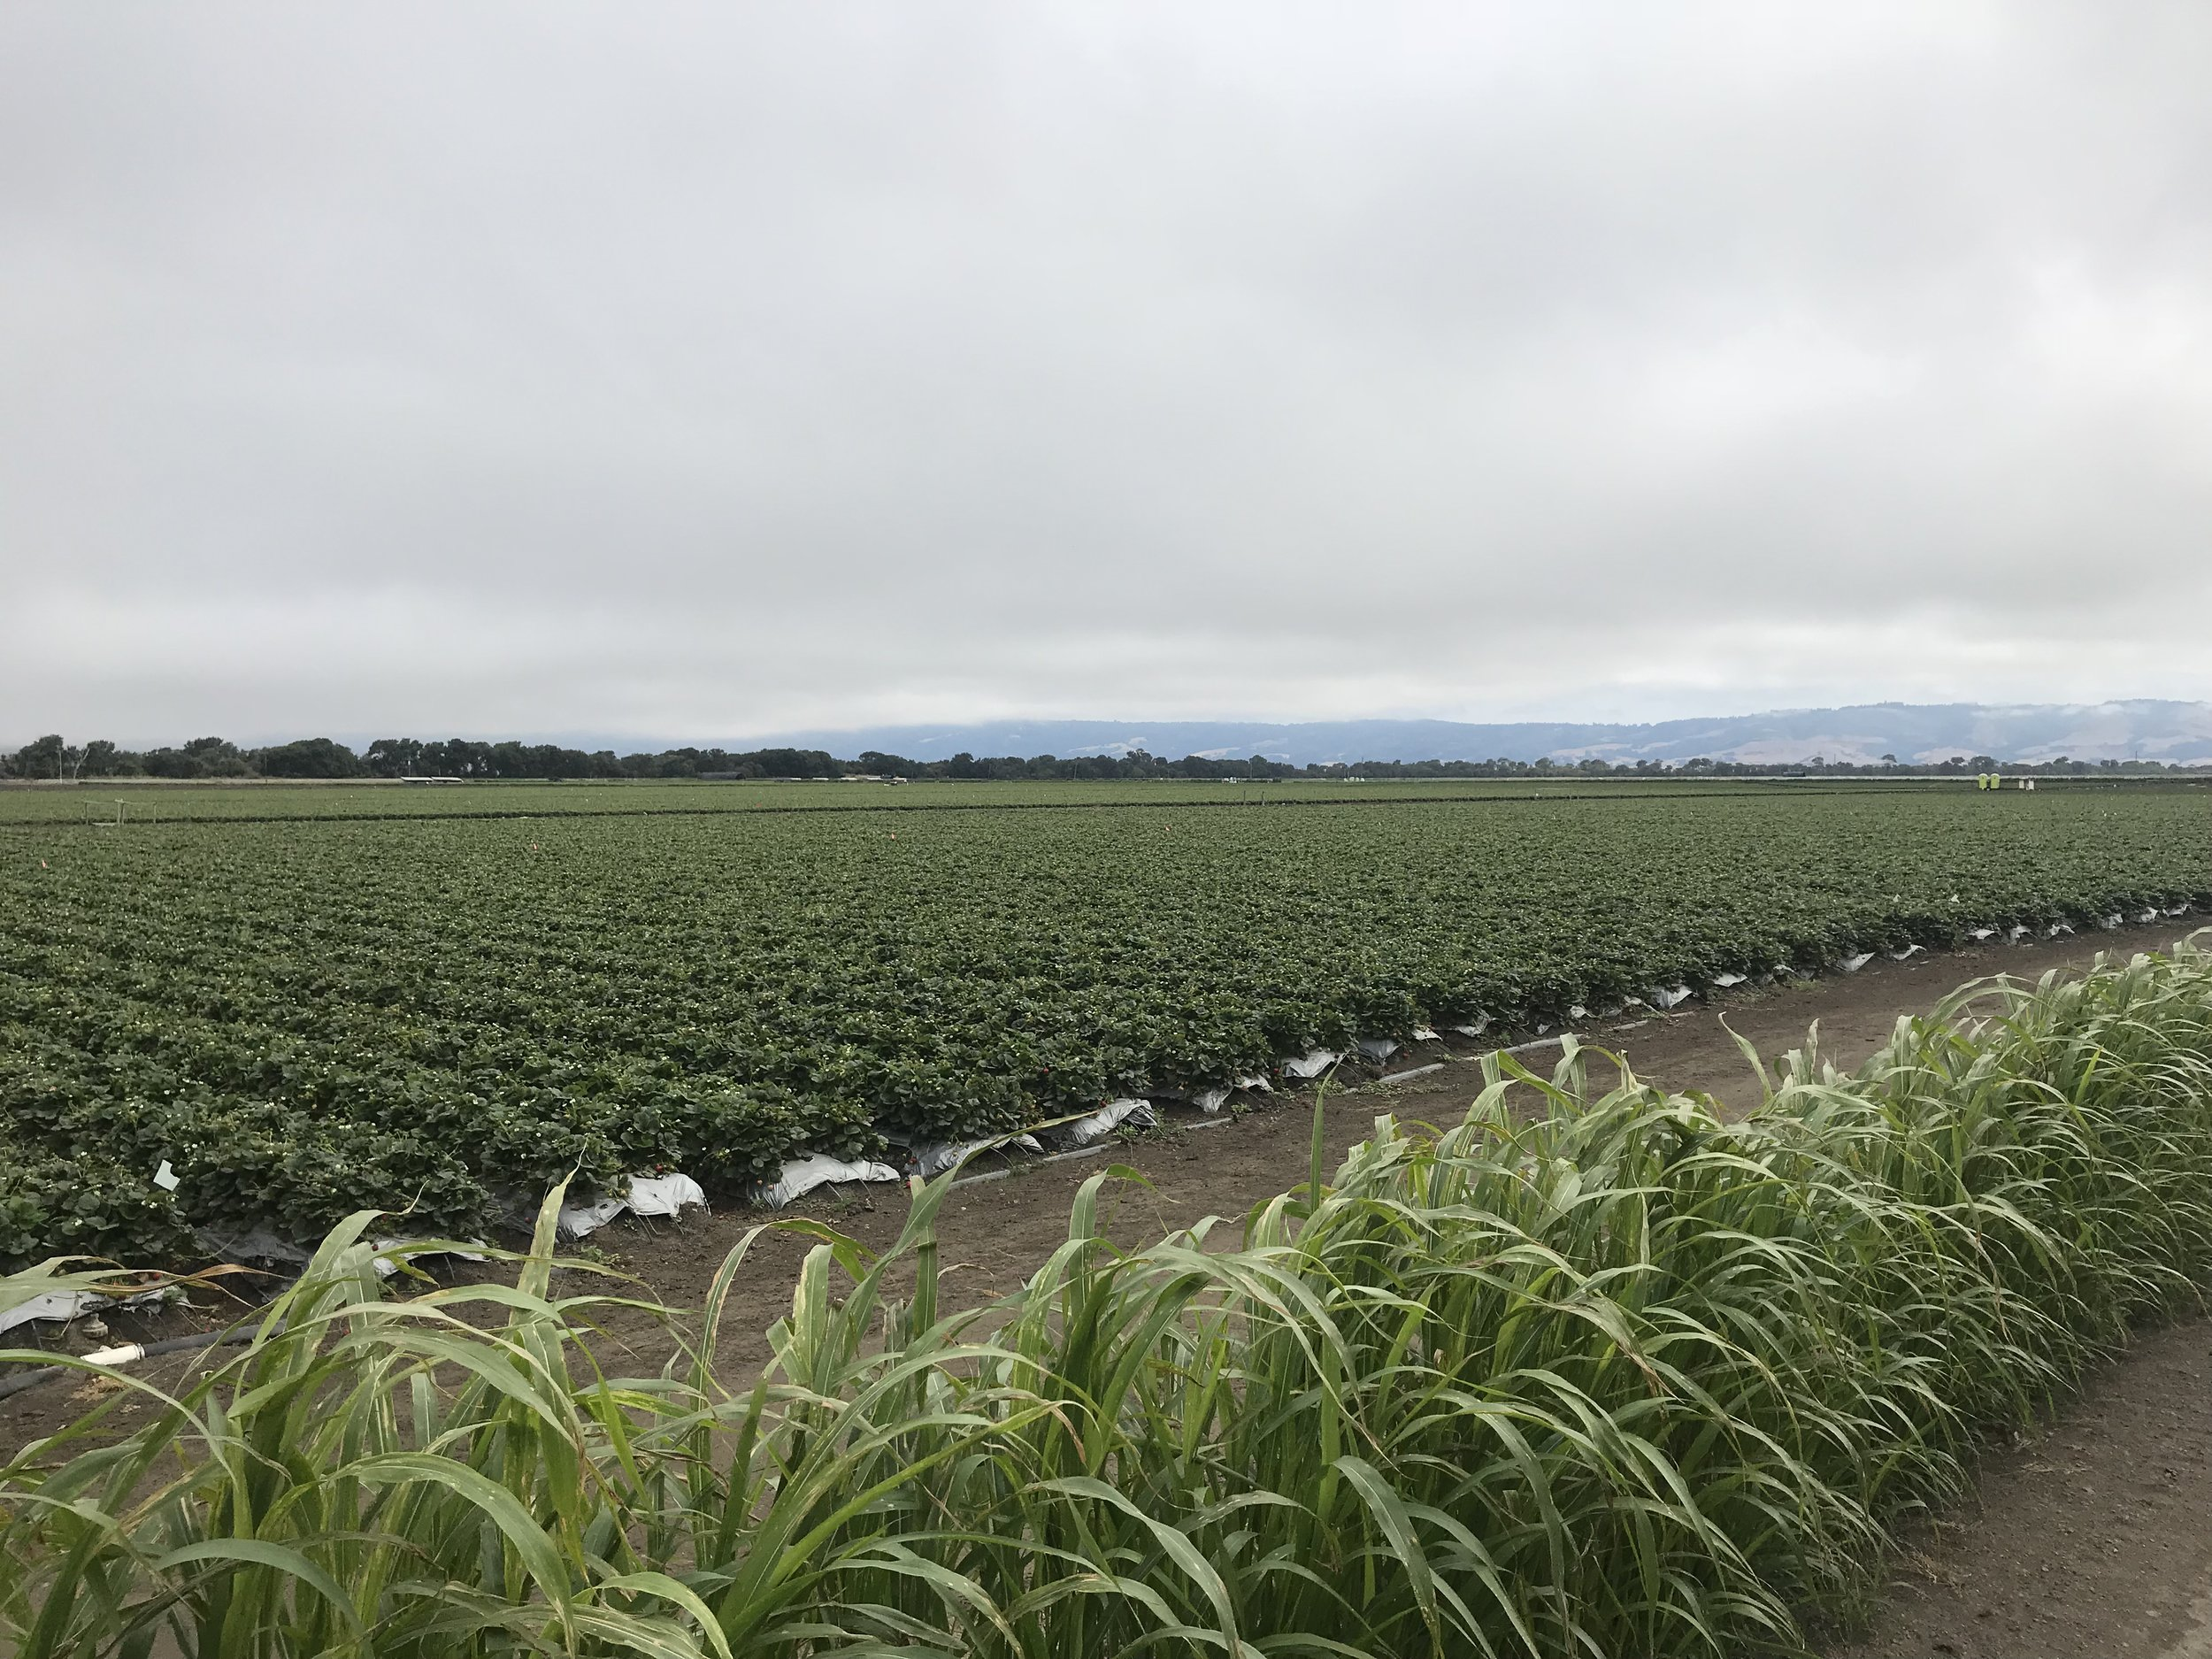 This morning, south of Santa Cruz, we biked through miles and miles of strawberry fields. It smelled like we were biking next to a lake of strawberry jam.